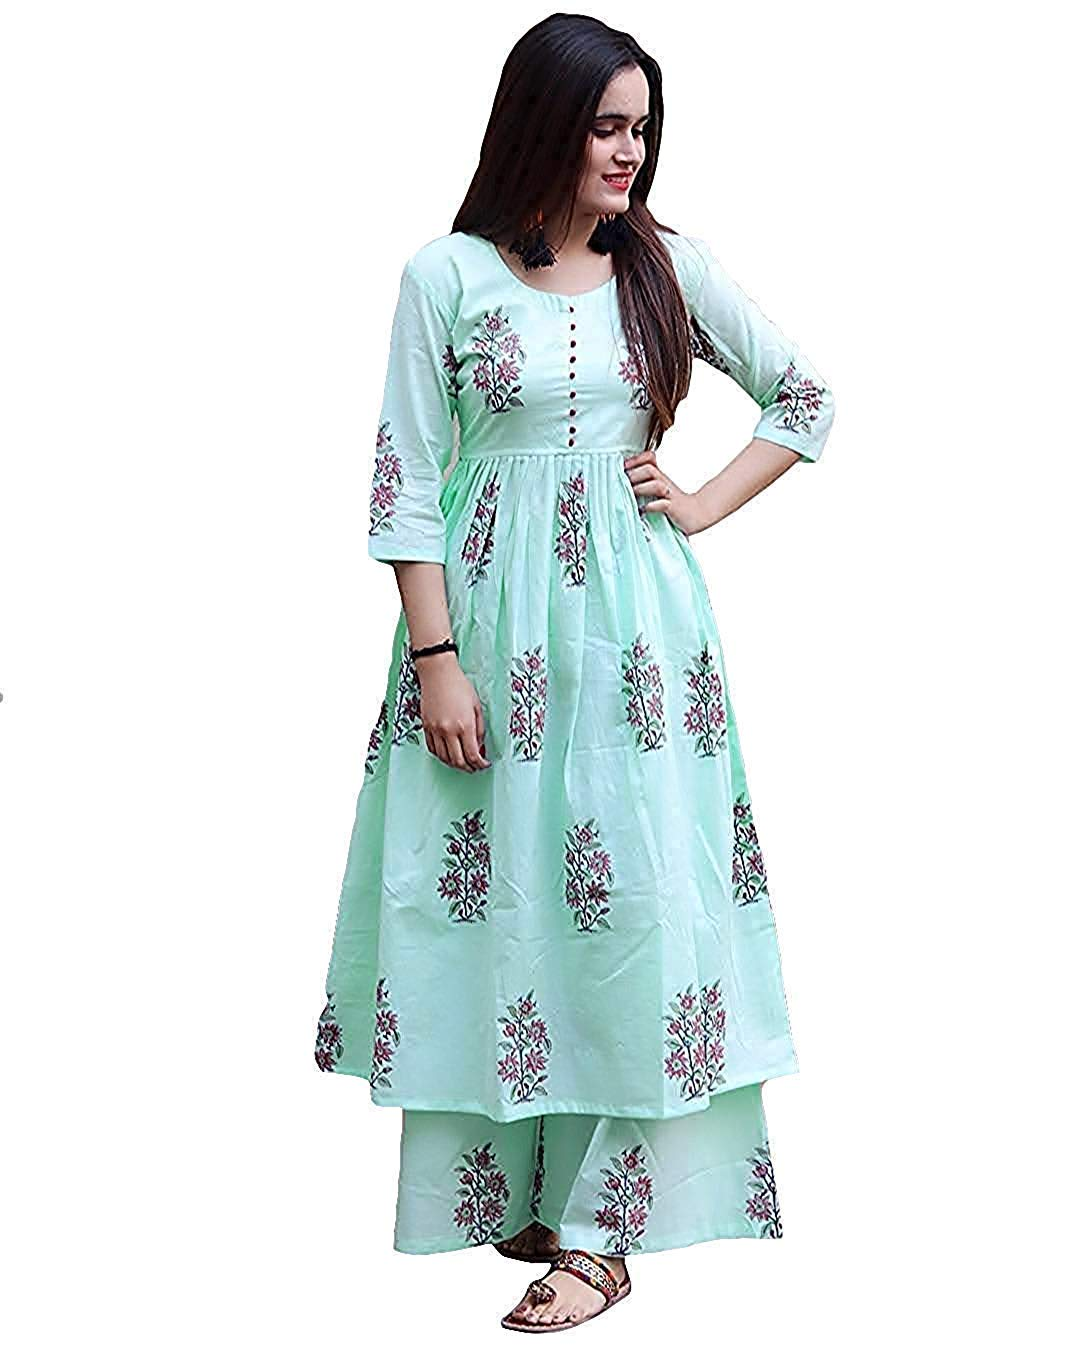 Marlin Women's Cotton Kurti With Palazzo Pant Set (Green) product image